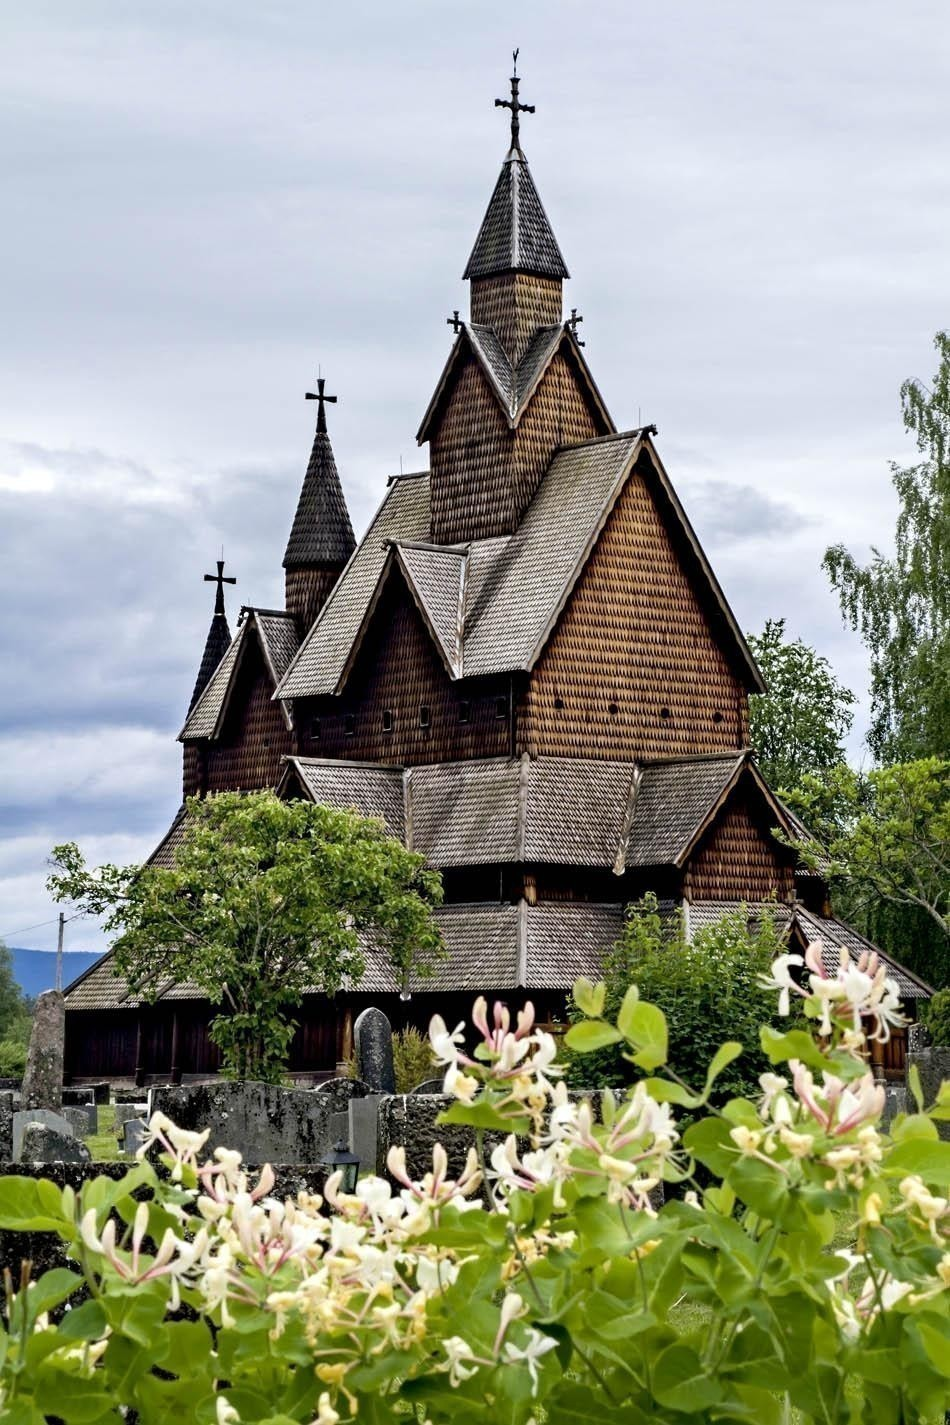 The Stave Church Heddal is around 26 meters height, the Biggest in its kind in Norway | Norway Travel Guide